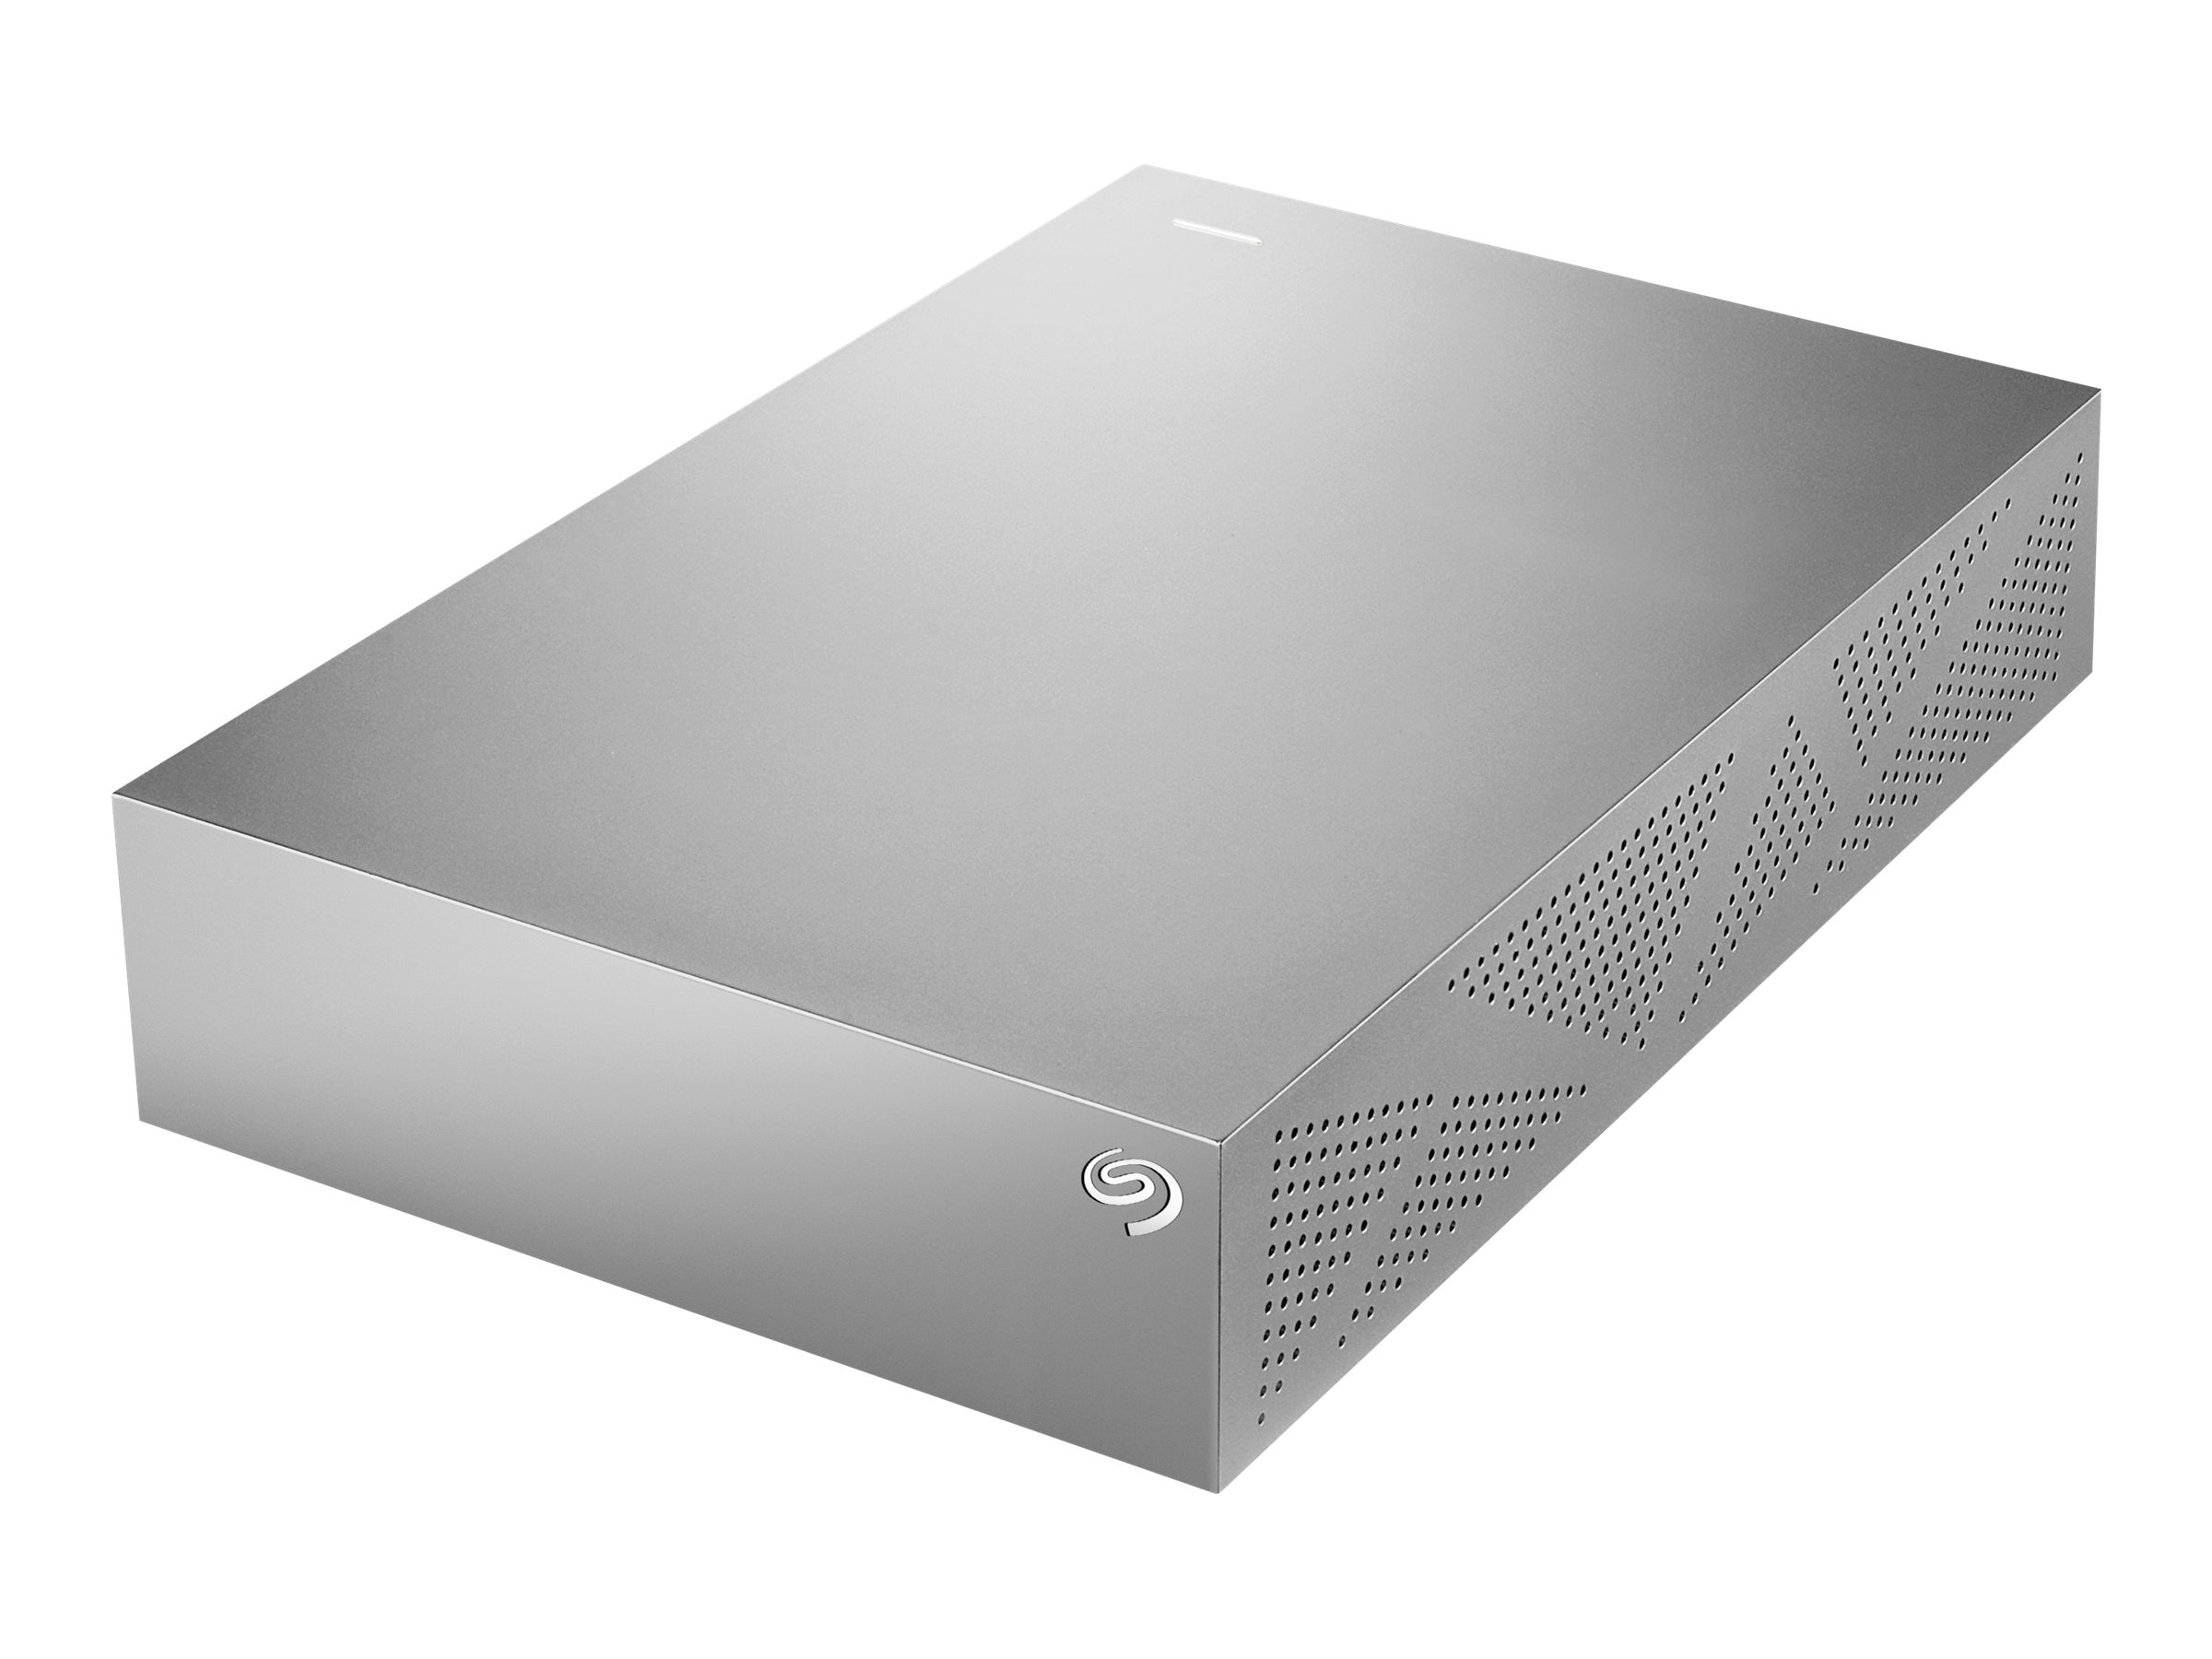 Seagate 4TB Backup Plus for Mac USB 3.0 3.5 Desktop Hard Drive - Titanium Silver, STDU4000100, 16654771, Hard Drives - External